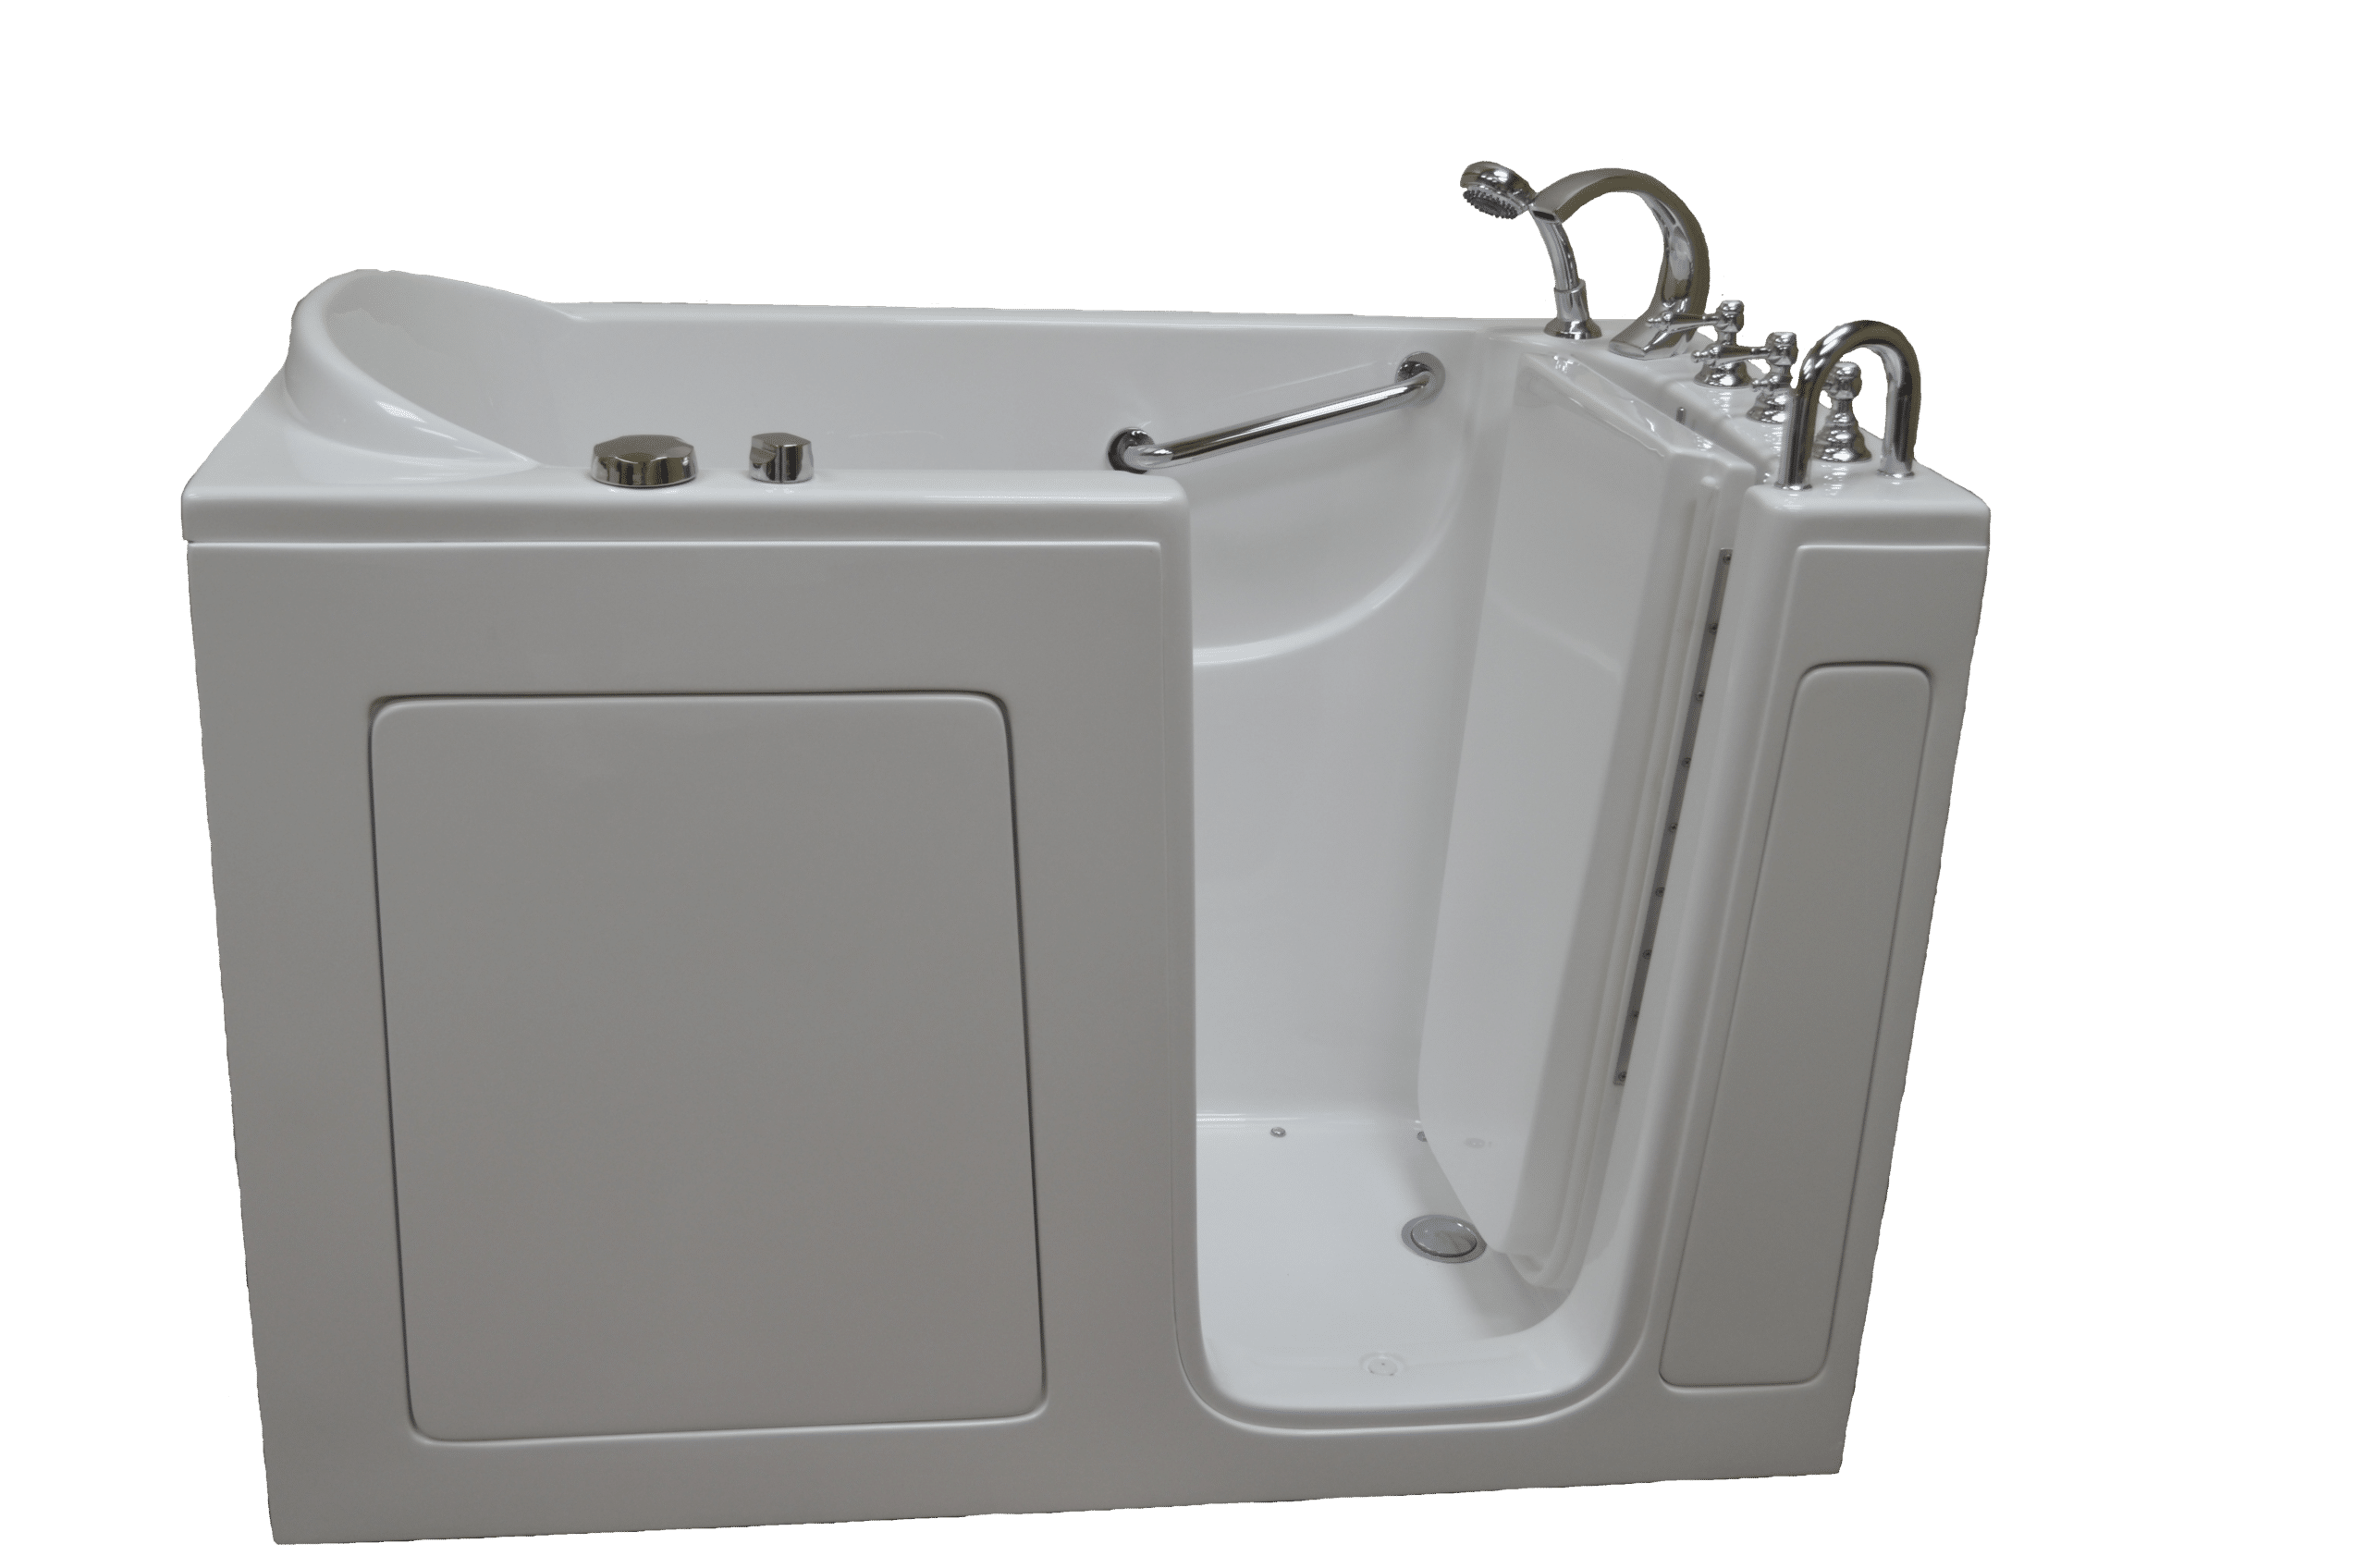 ada stylish tub mansfield second walkin from plumber plumbing shower blog available by combination and in walk tubs generation researching a hero wholesaler shot licensed started colaluca